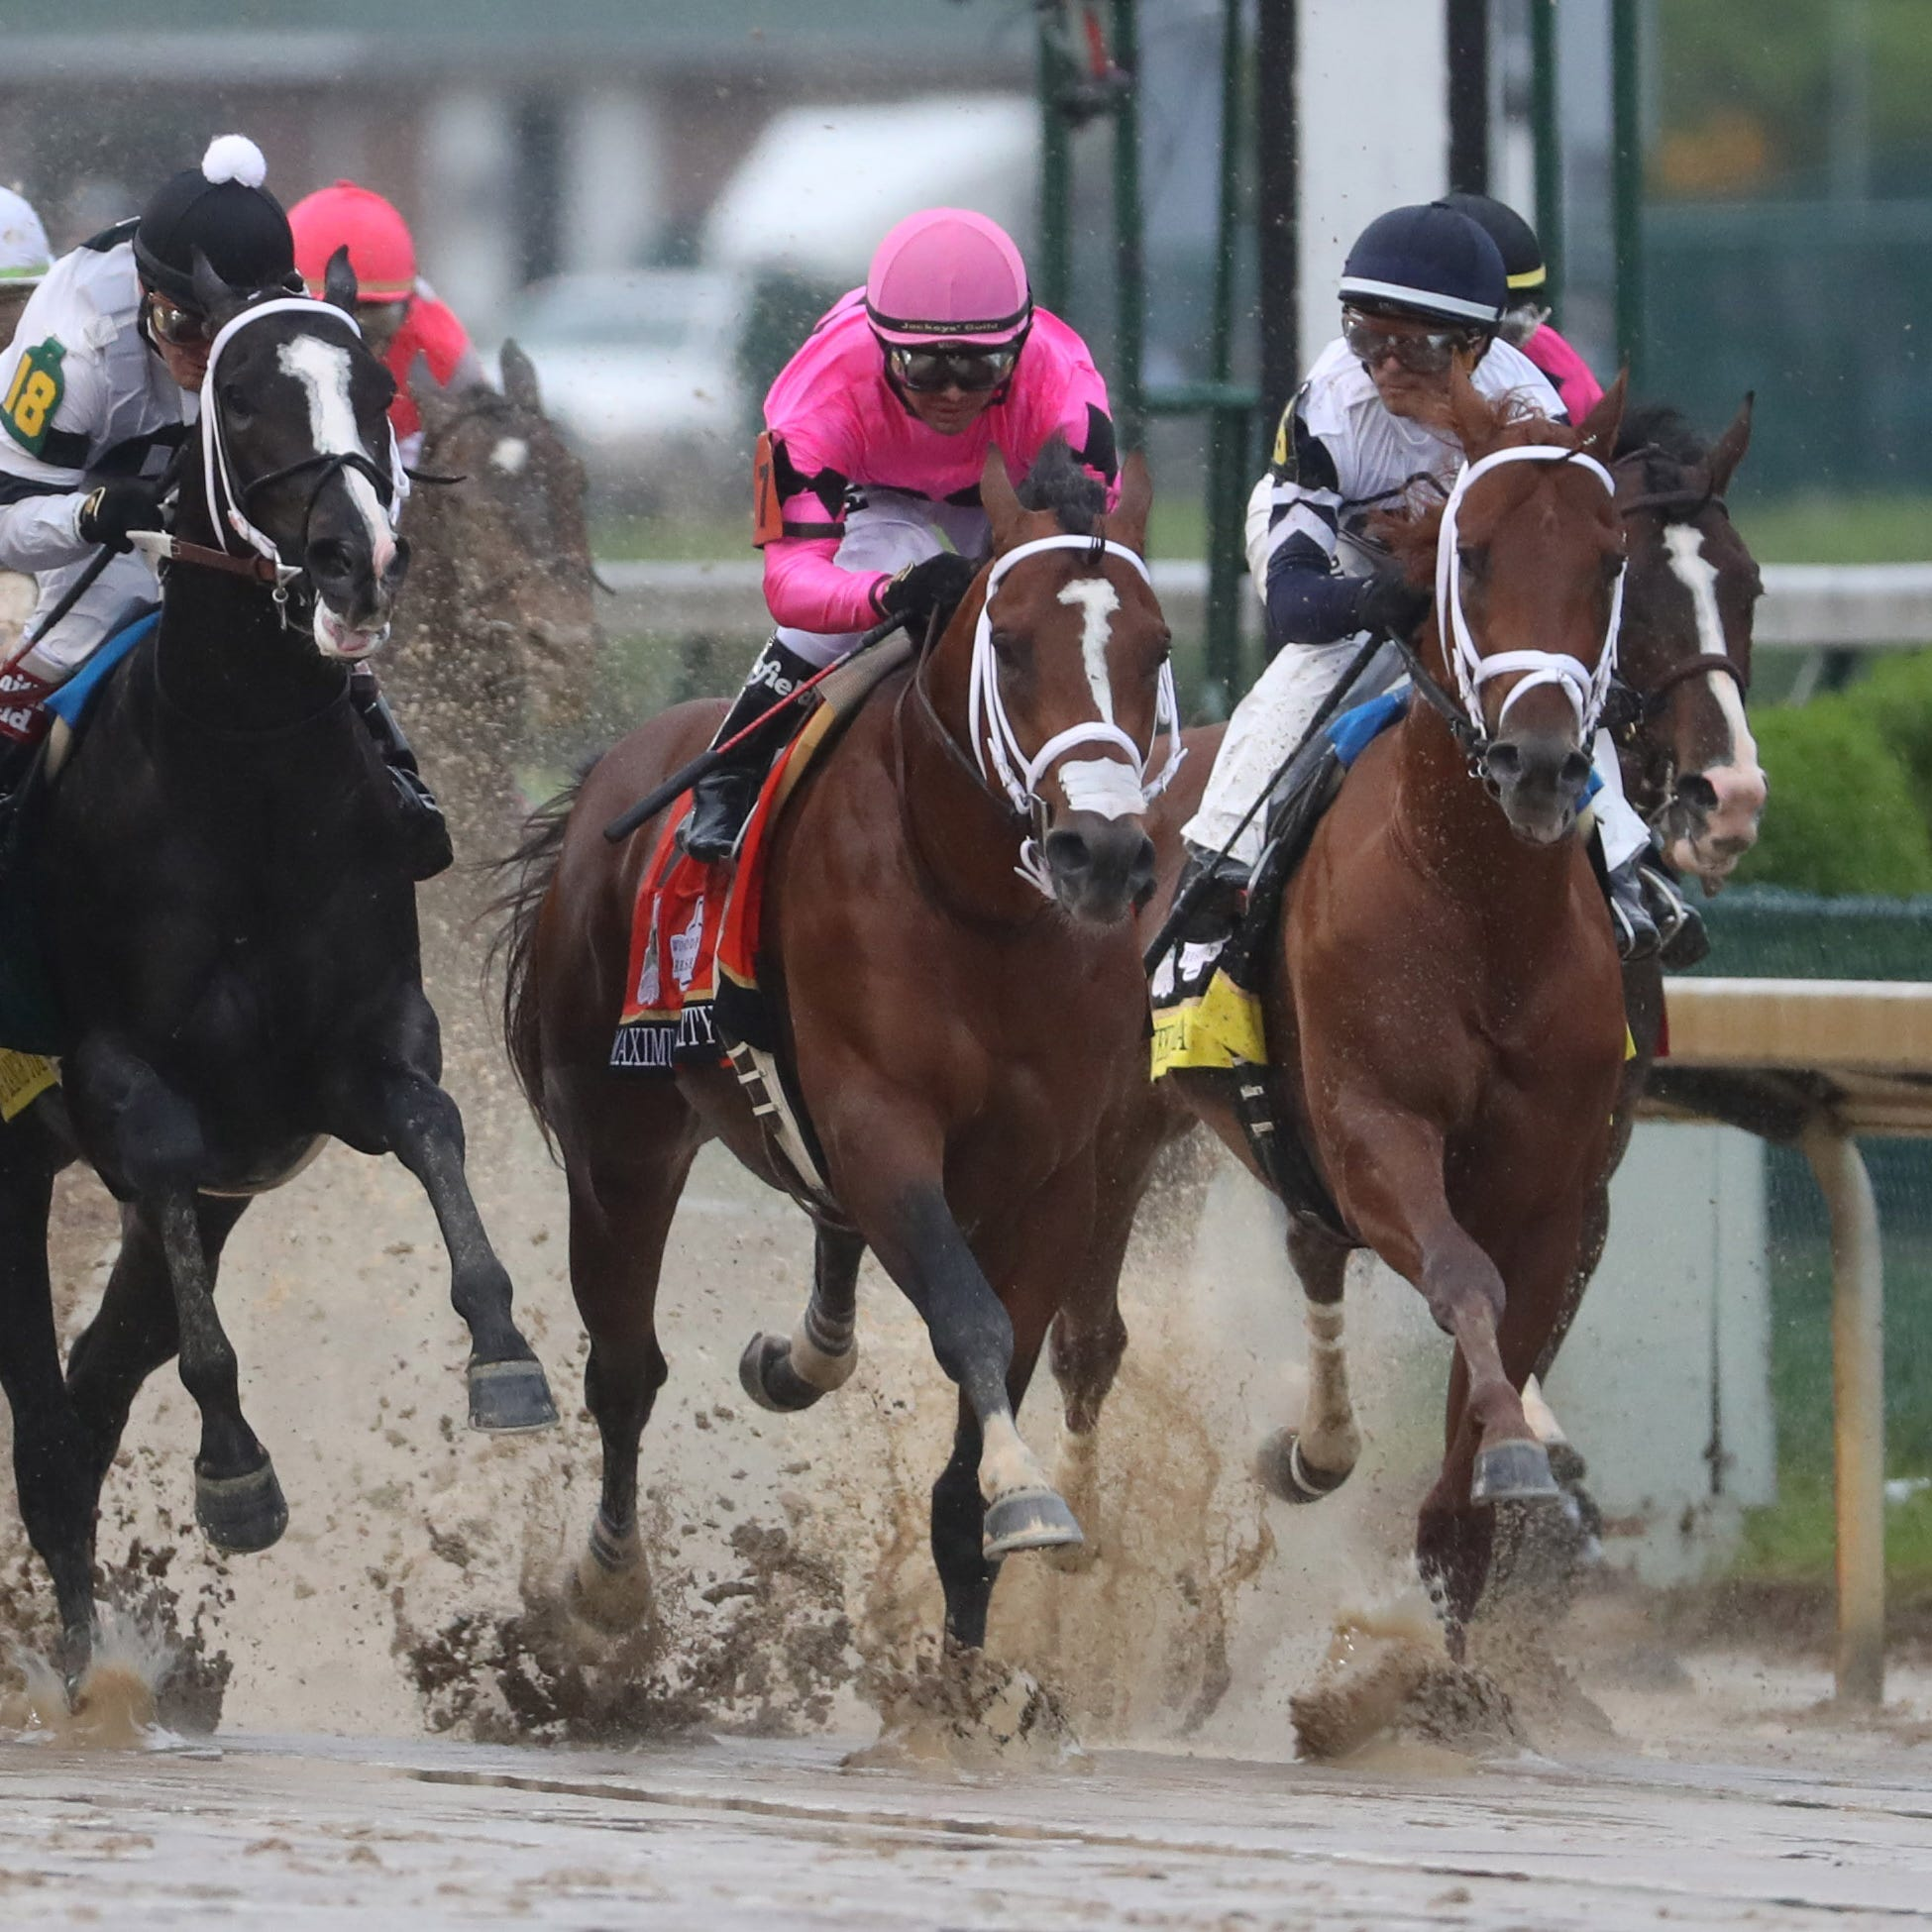 2019 Kentucky Derby: Maximum Security disqualified, as Country House wins at 65-1